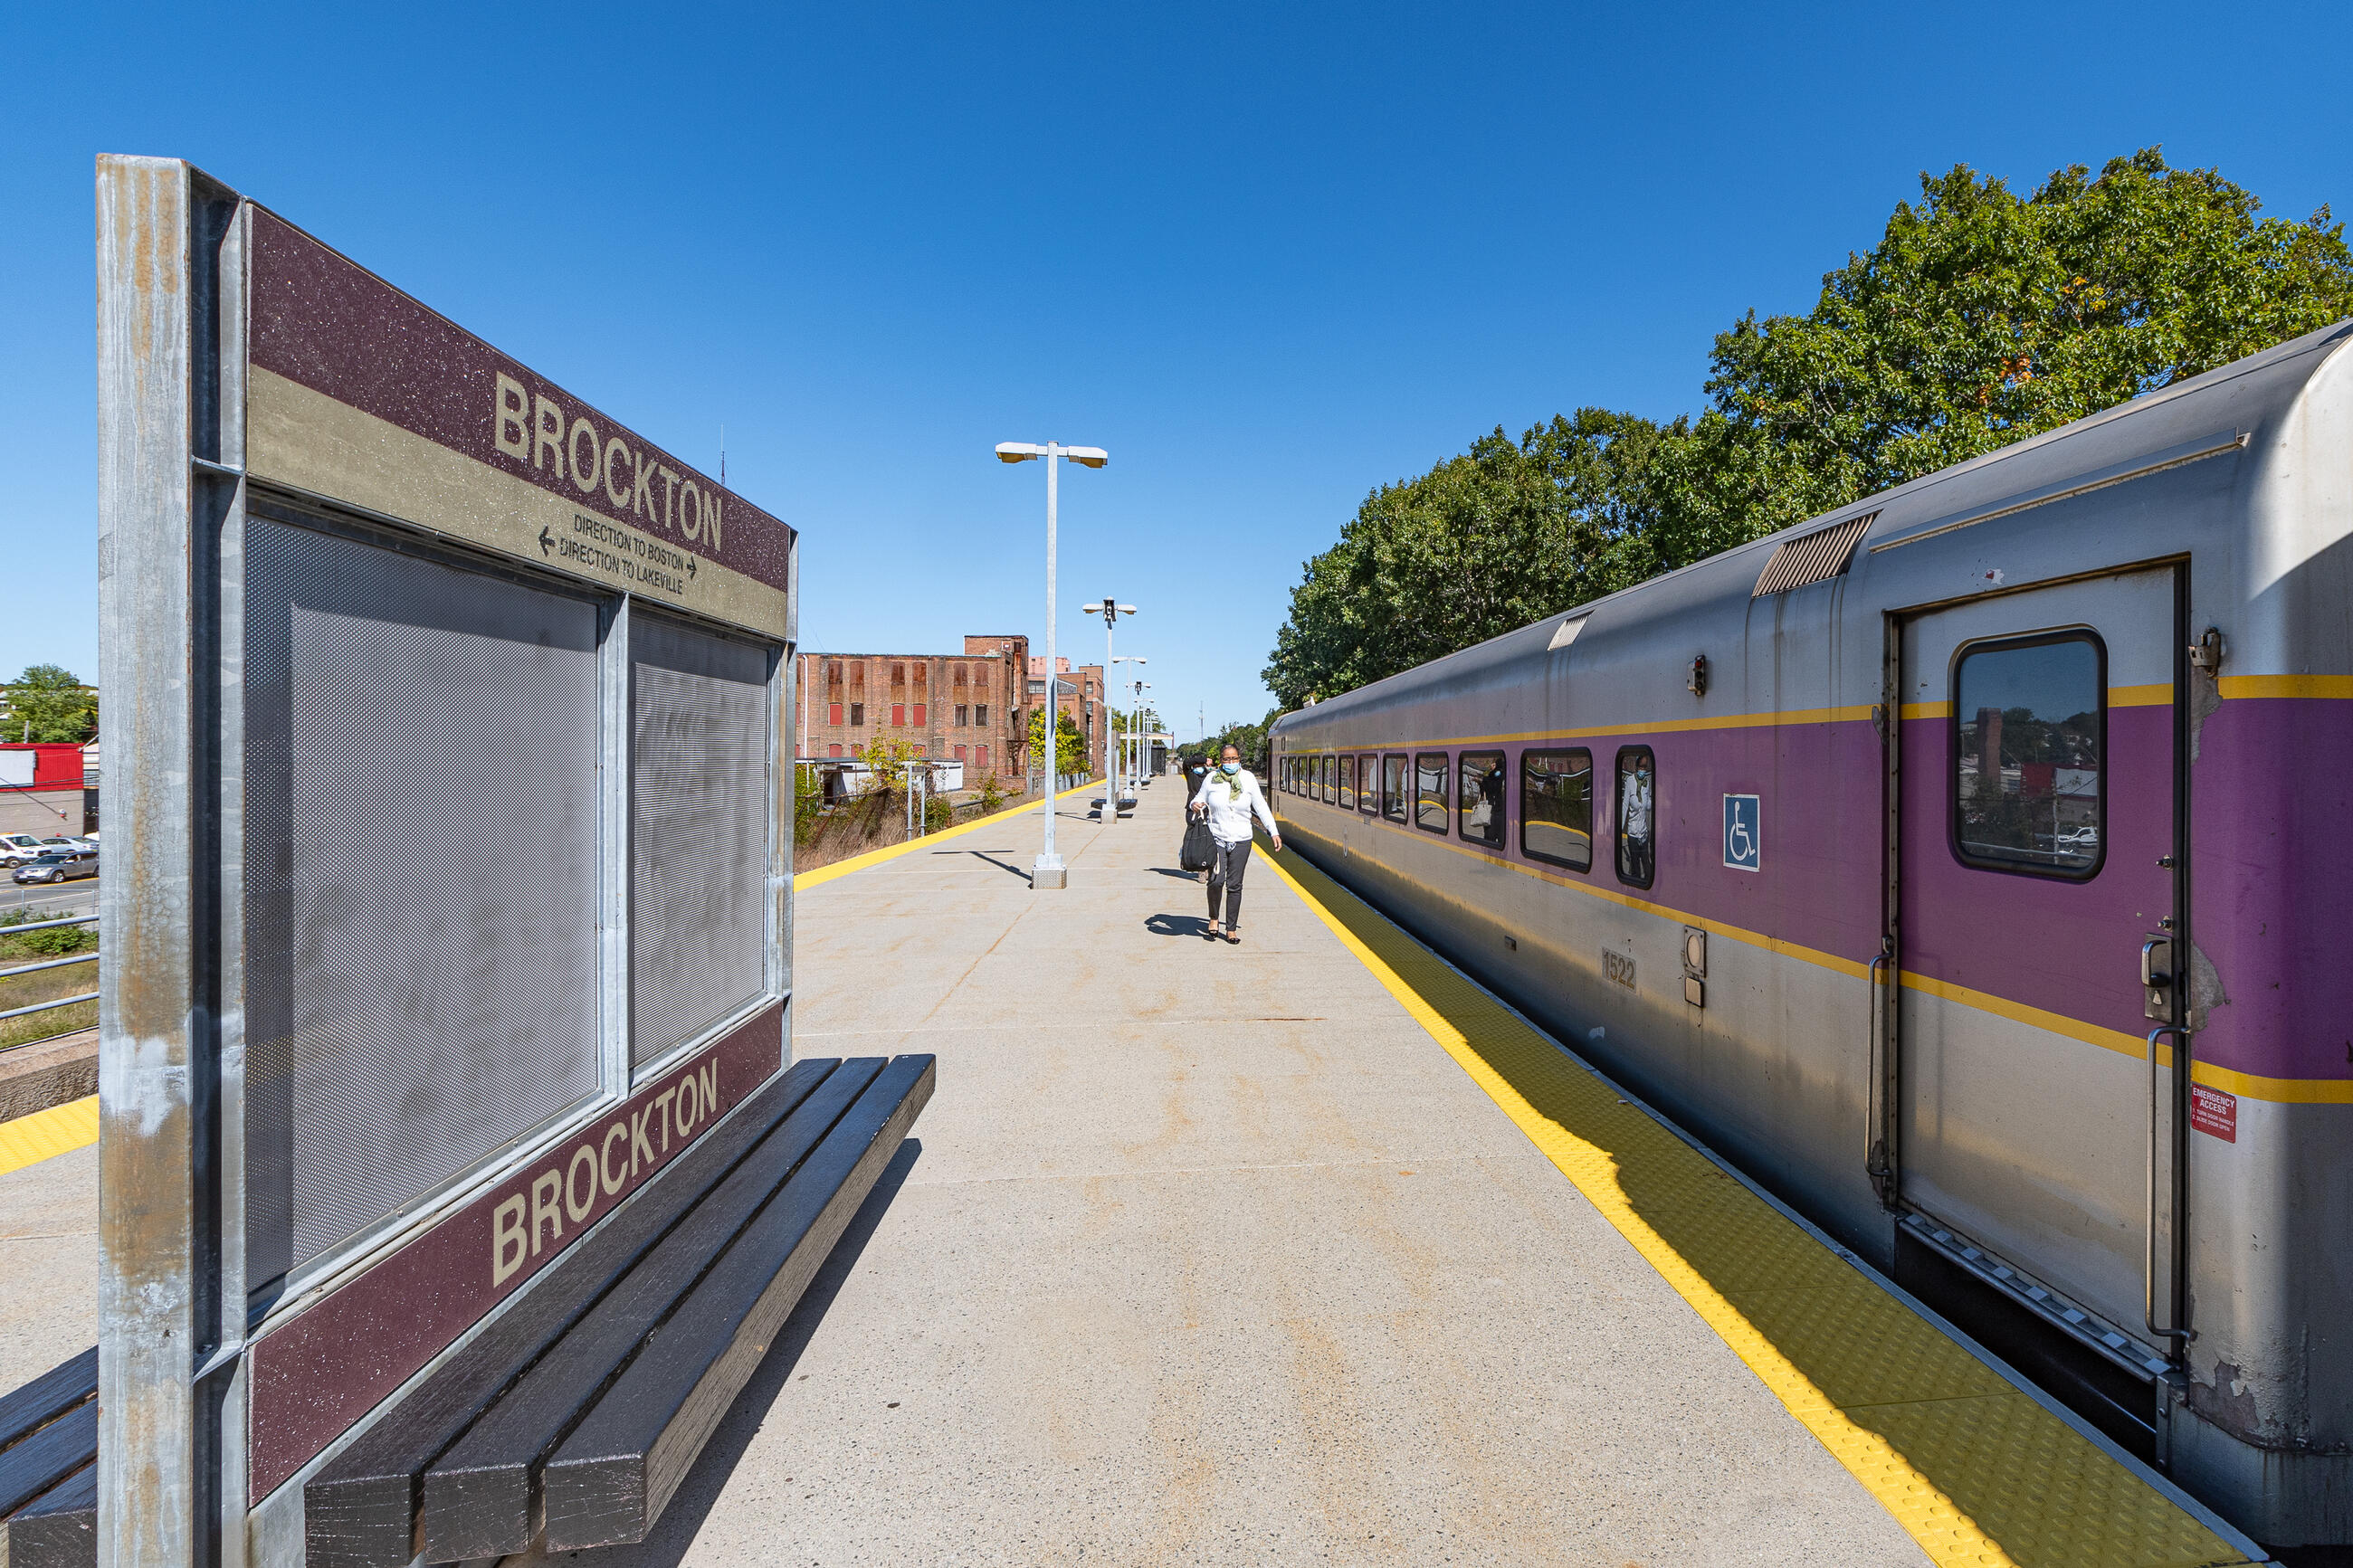 Commuter Rail platform at Brockton Statoin, with a train pulled up, and a masked rider walking.